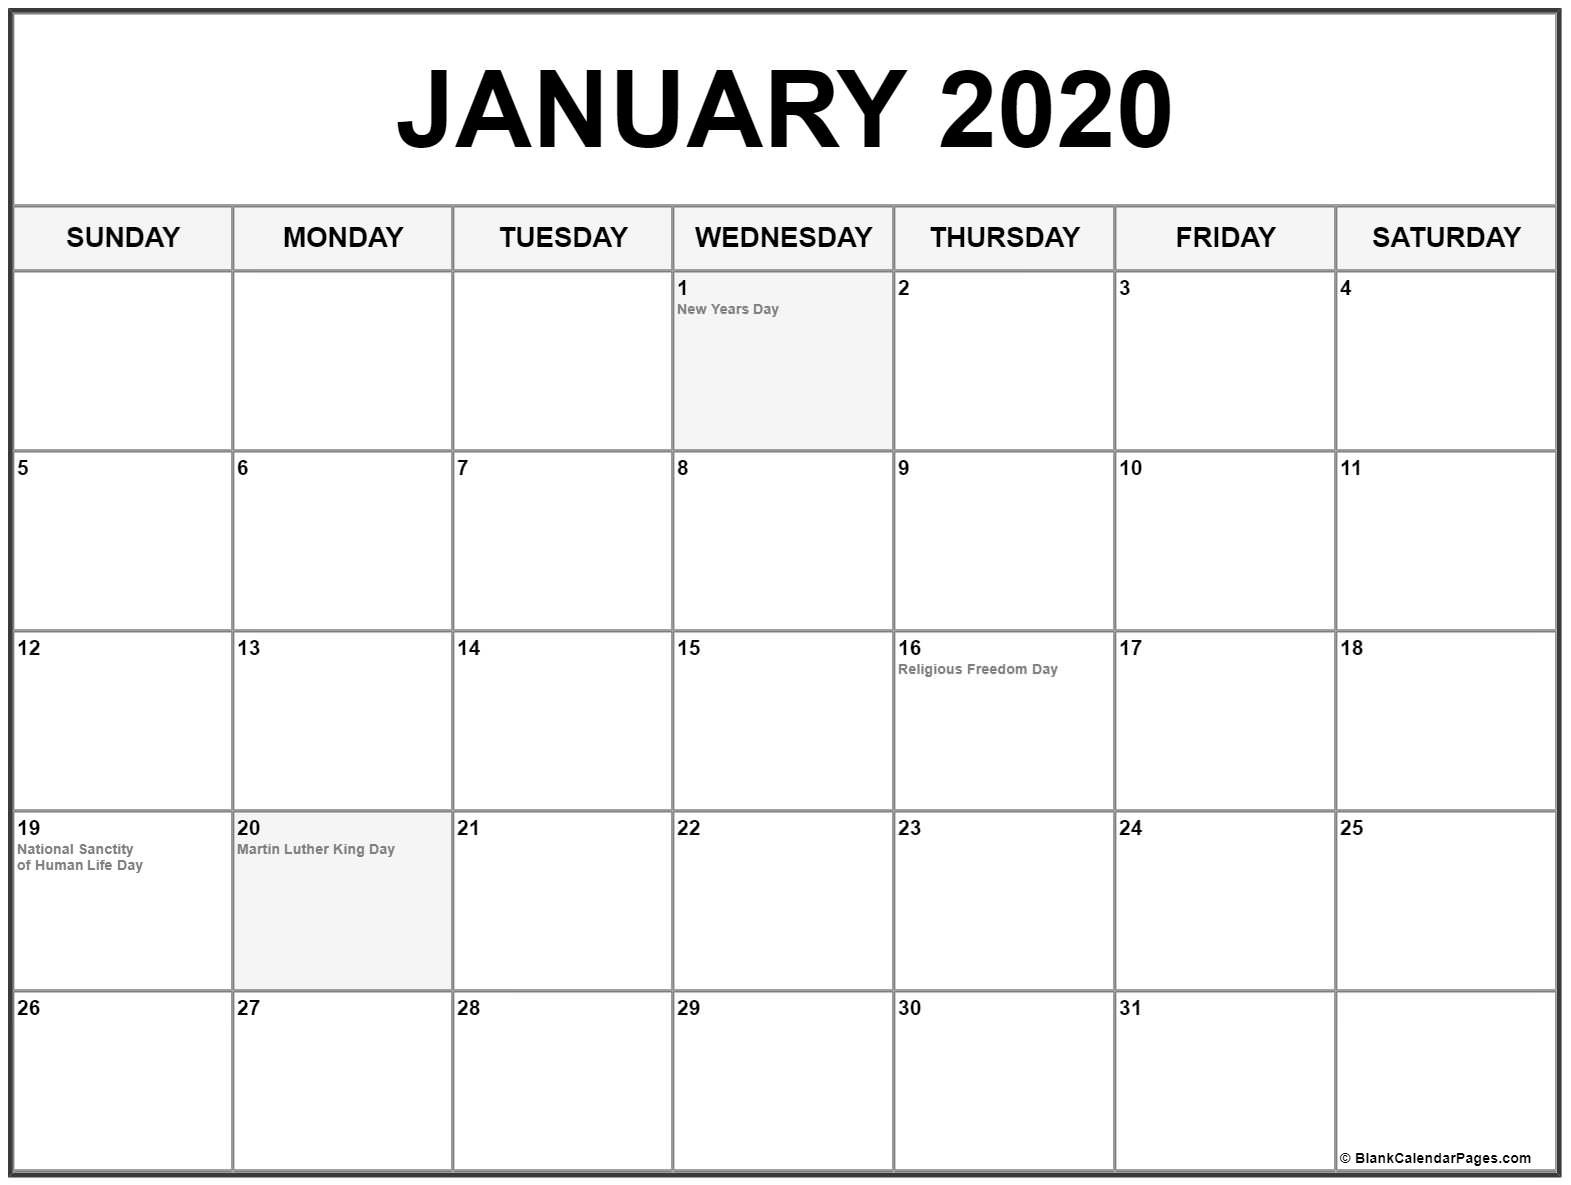 Collection Of January 2020 Calendars With Holidays-January 2020 Calendar Us